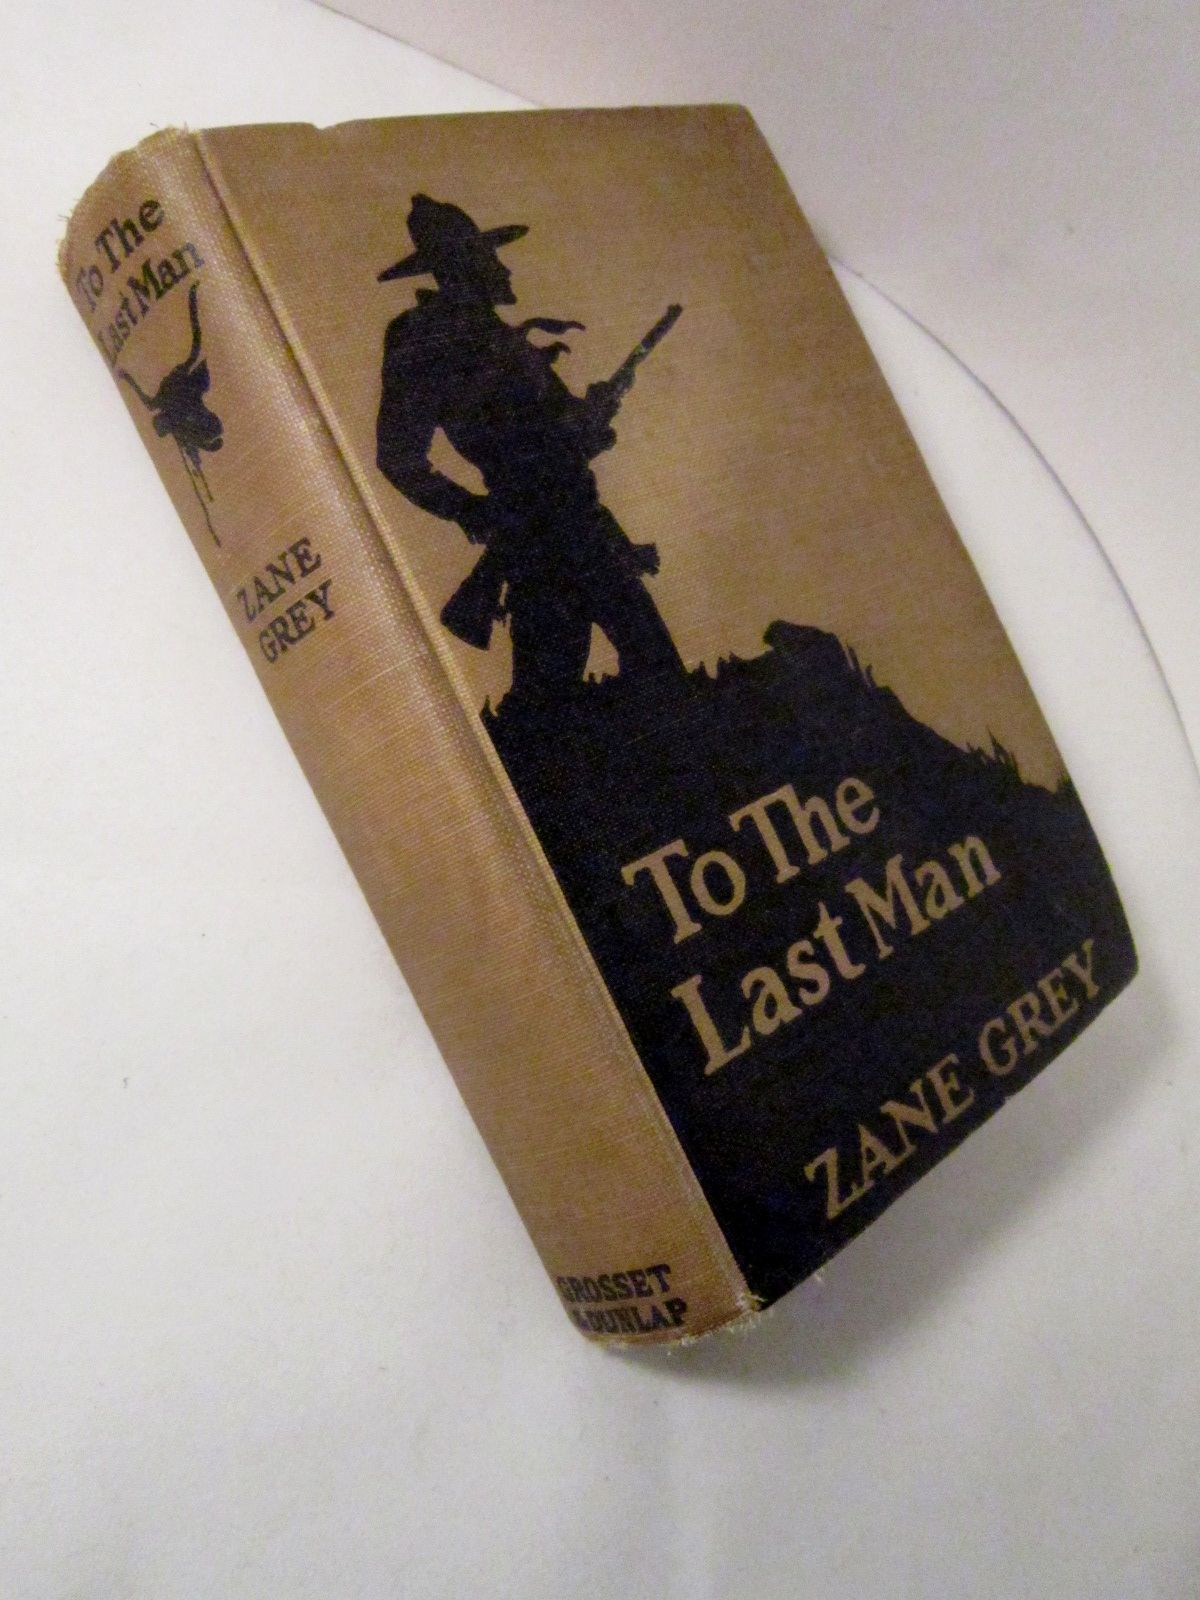 To The Last Man 1921 novel by Zane Grey. Story of the Pleasant Valley War  in Arizona. Hero: Jean Isbel. (Photo by RedbirdRidge)